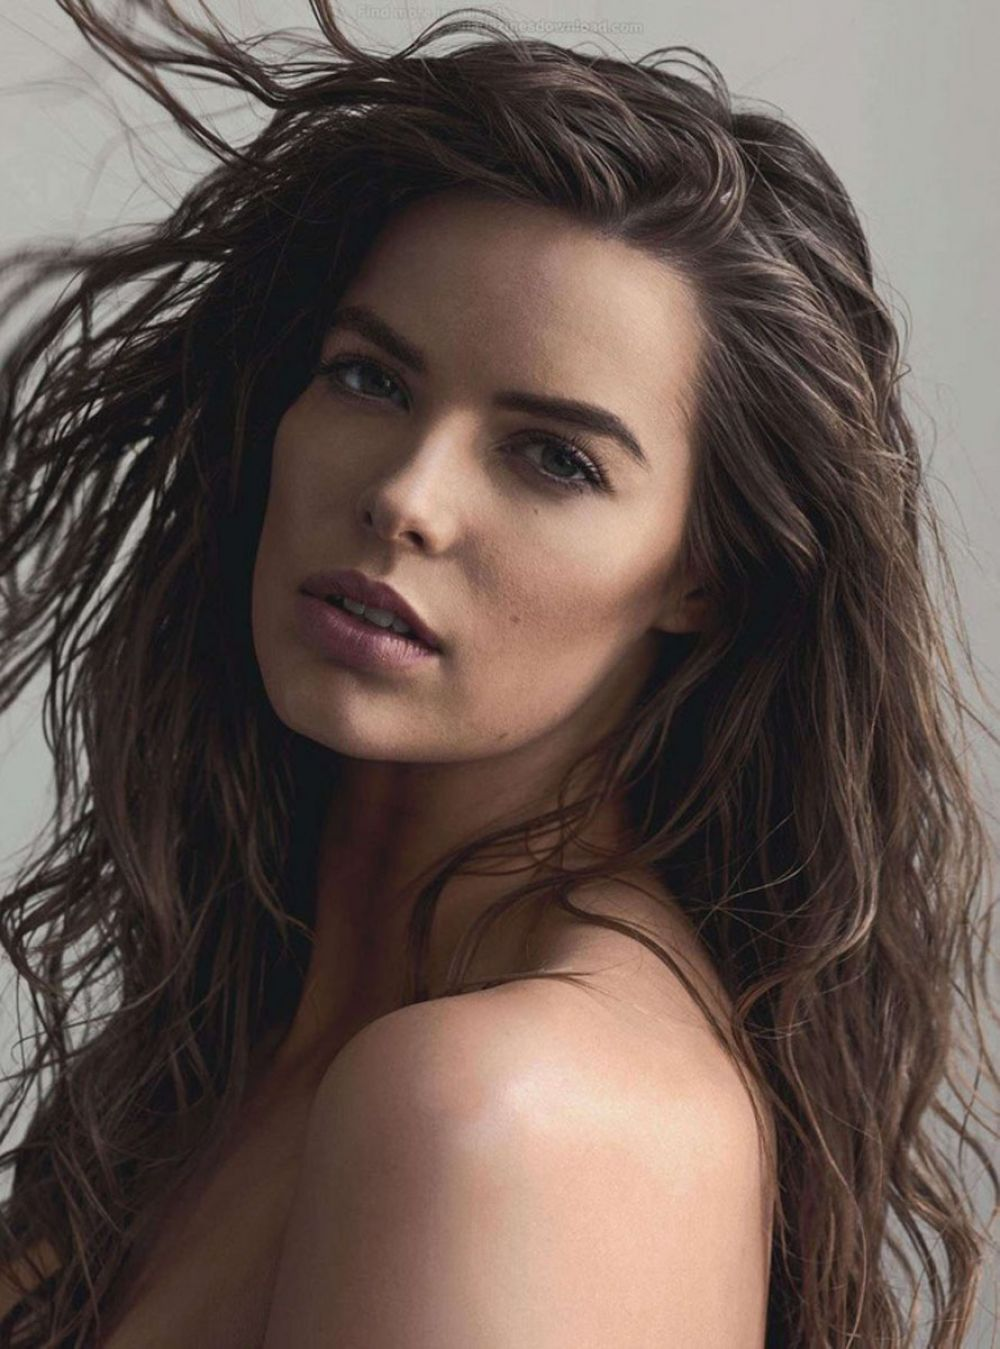 Robyn Lawley: Interview and editorial for Vogue Australia ...